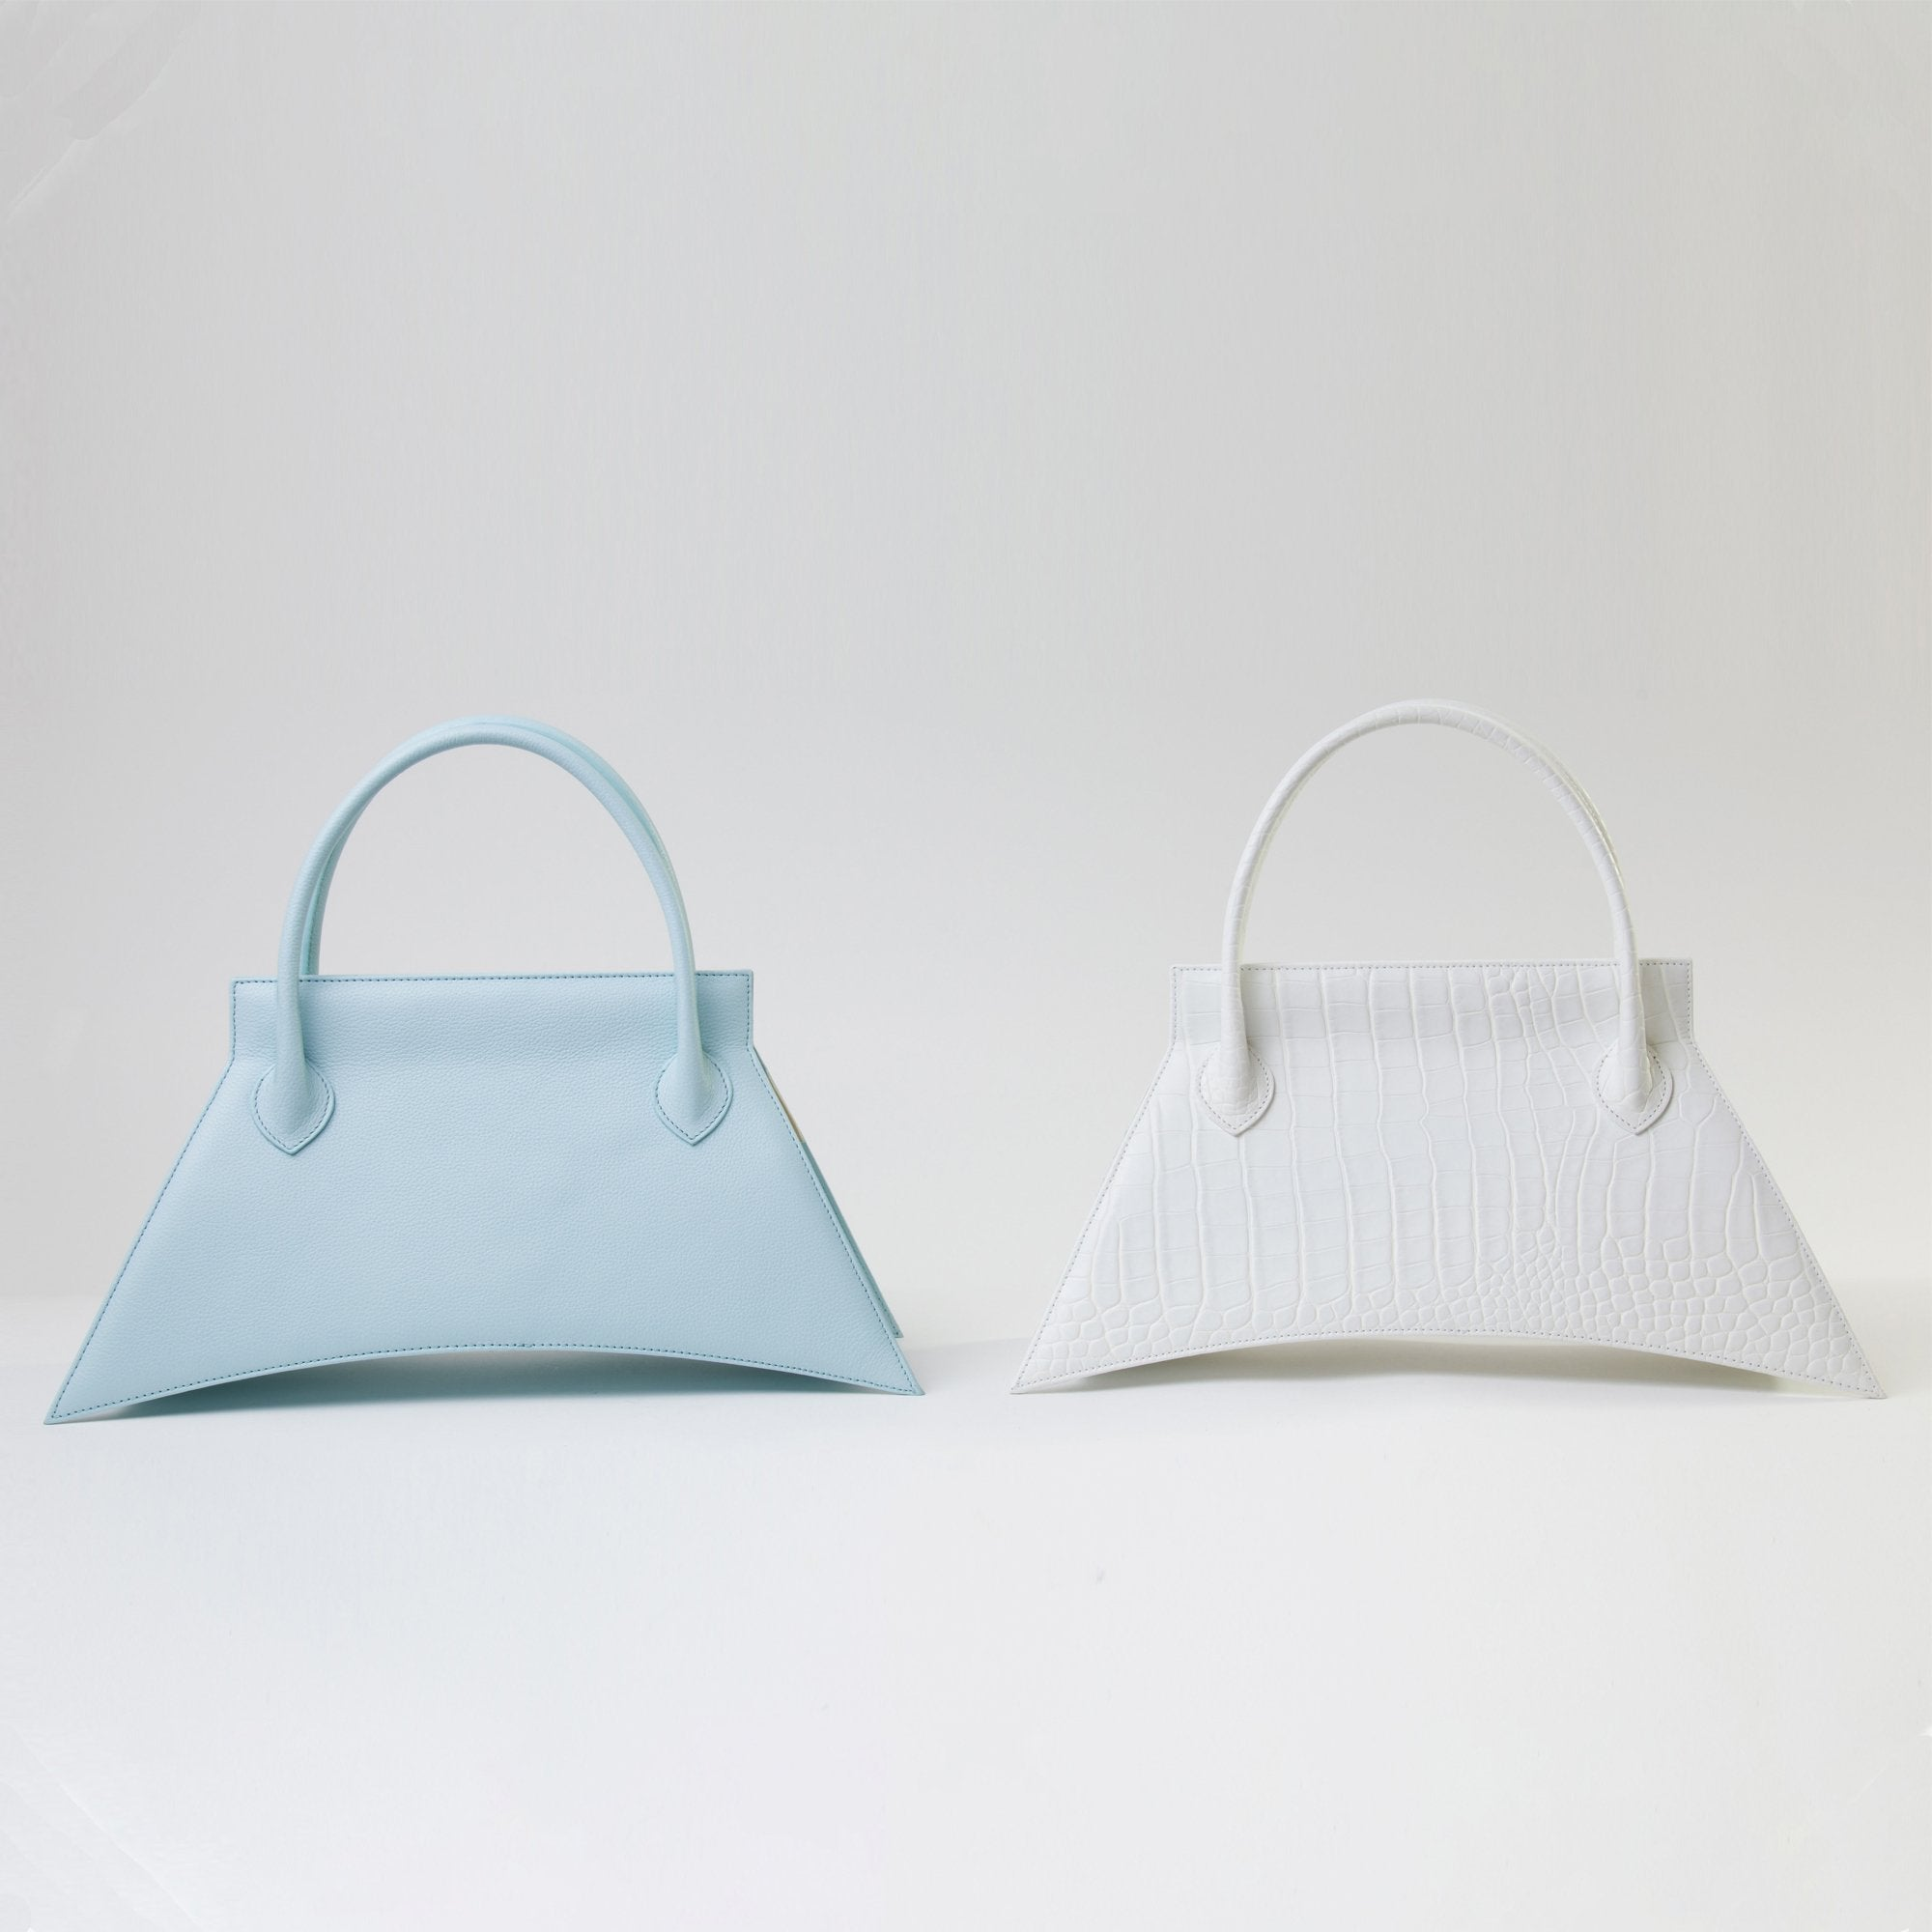 Collection of MINI BLANKET Bag, a party bag with minimalist look and available in brown and white croc variants